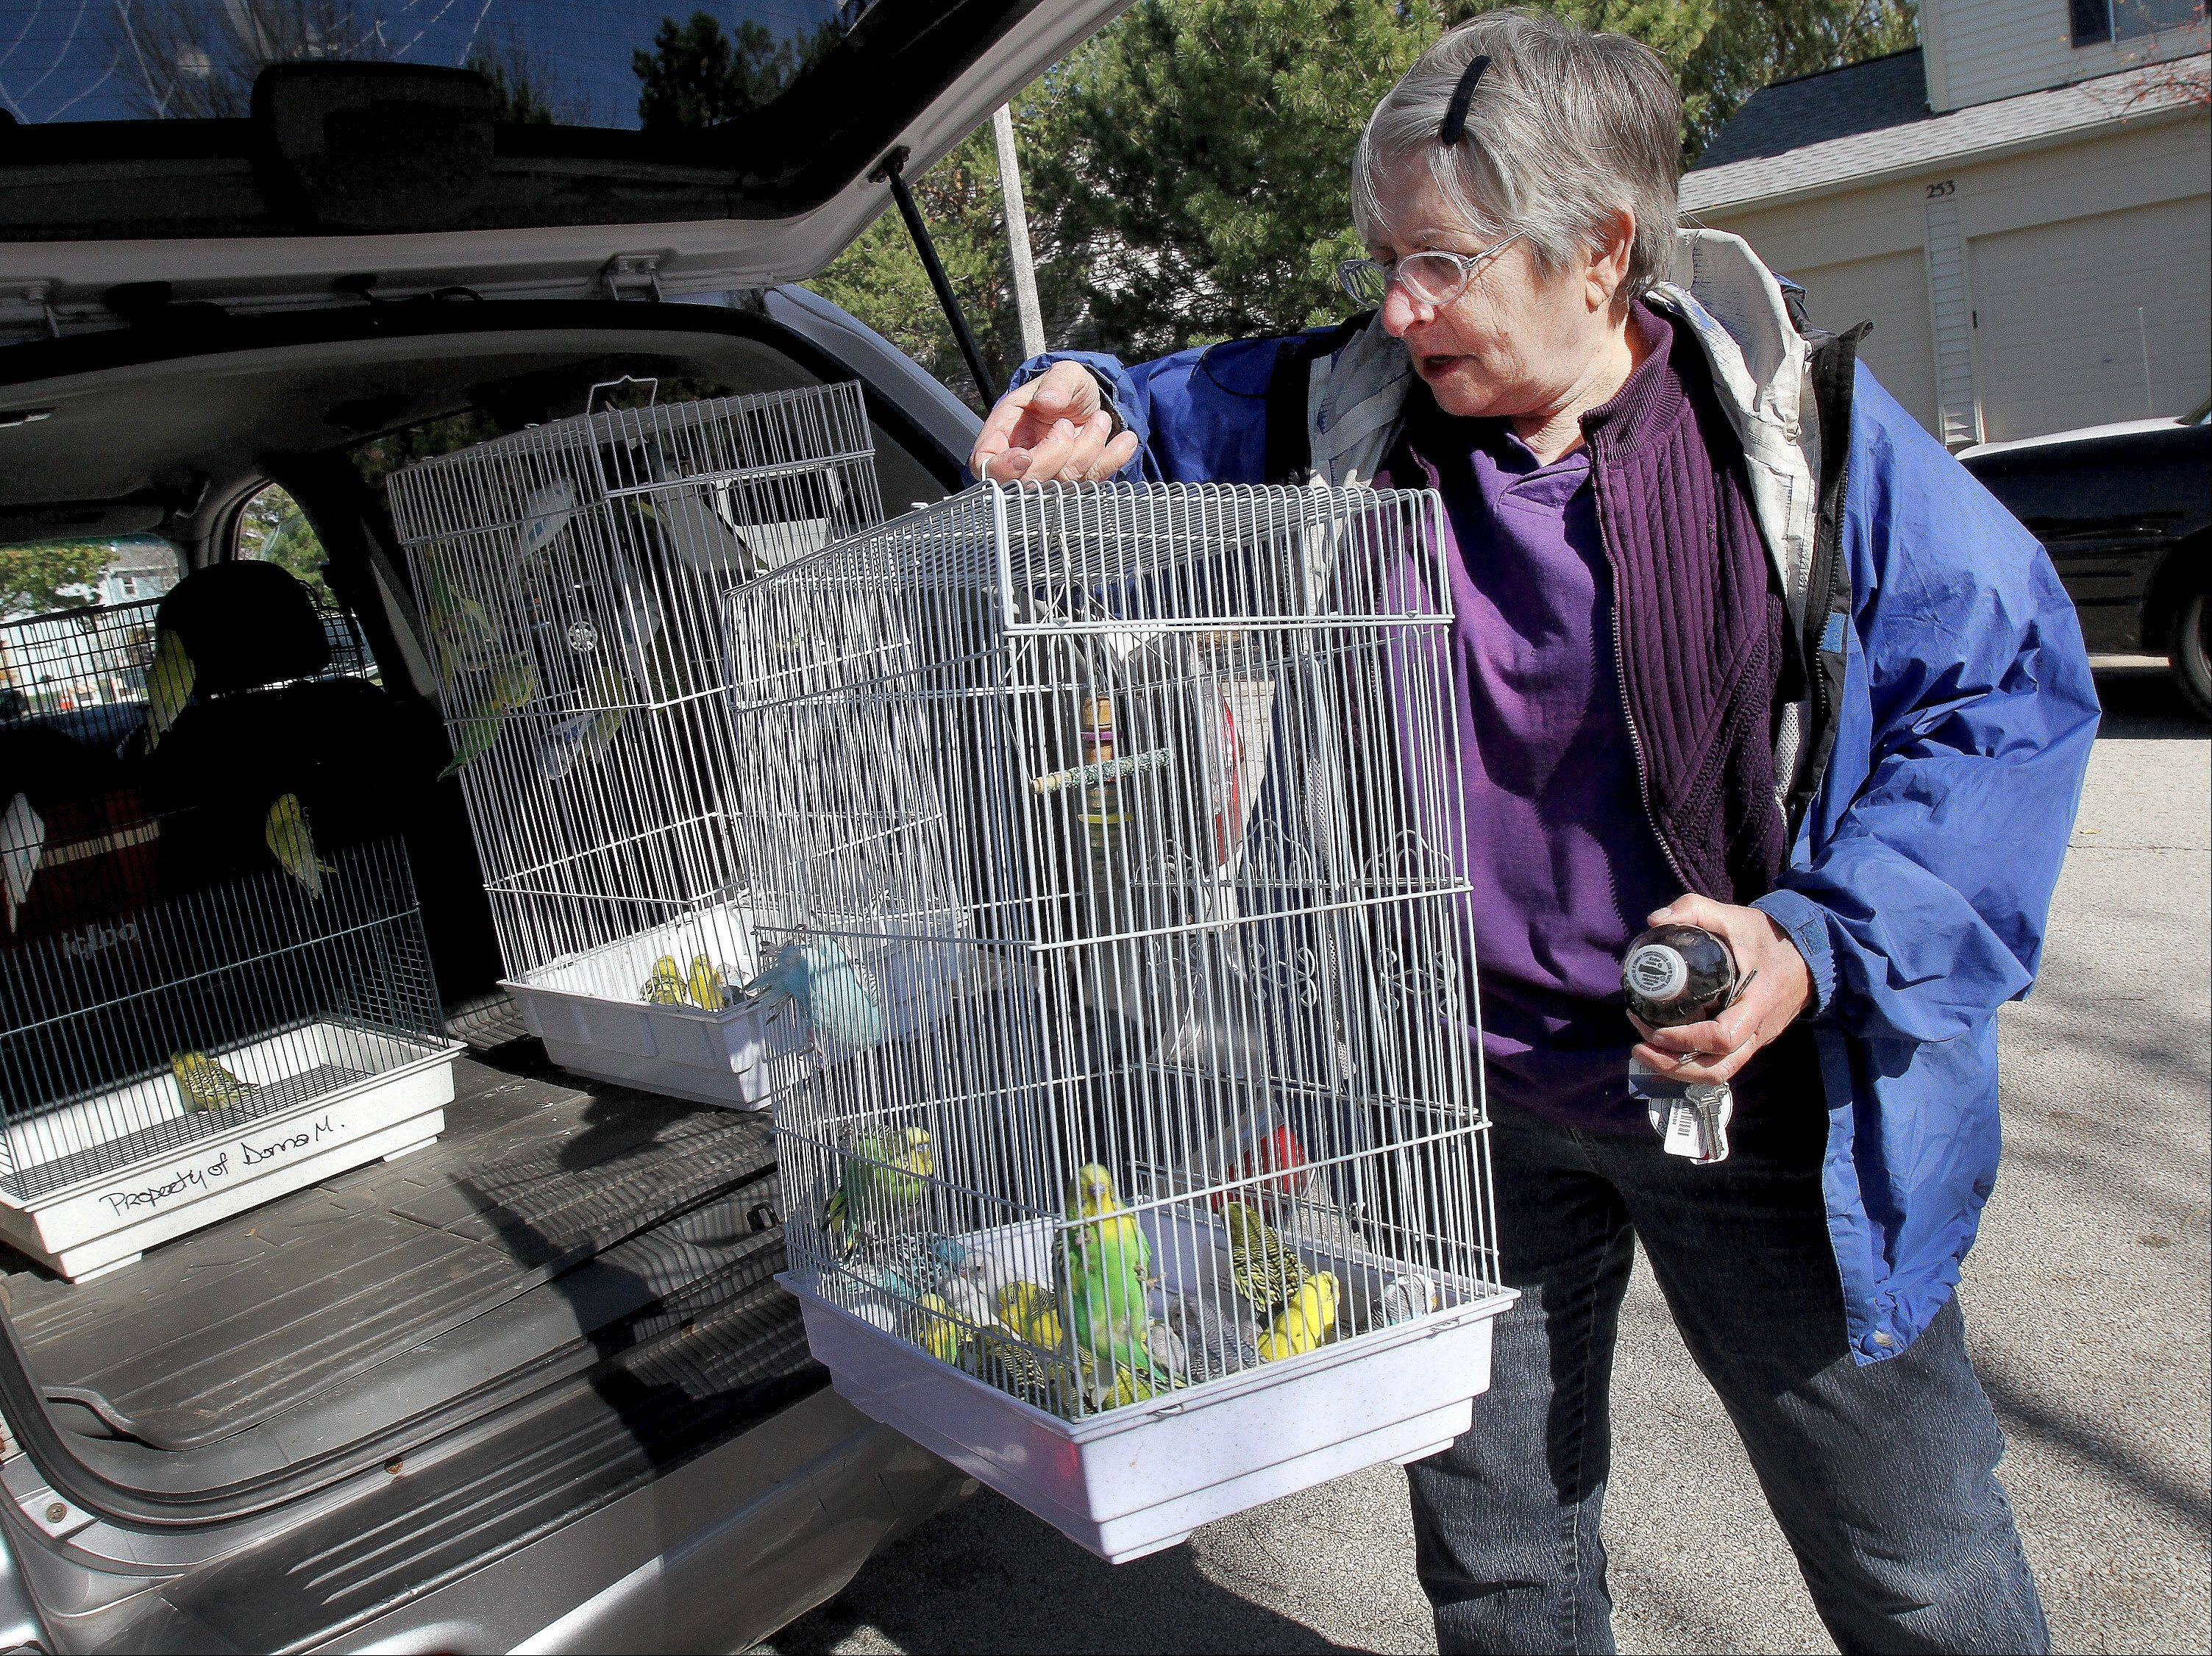 Volunteers like Diana Federl, head of adoption at the Greater Chicago Cage Bird Club, coached workers on how to remove hundreds of birds from a home that was also filled with garbage on the 200 block of Shadybrook Lane.